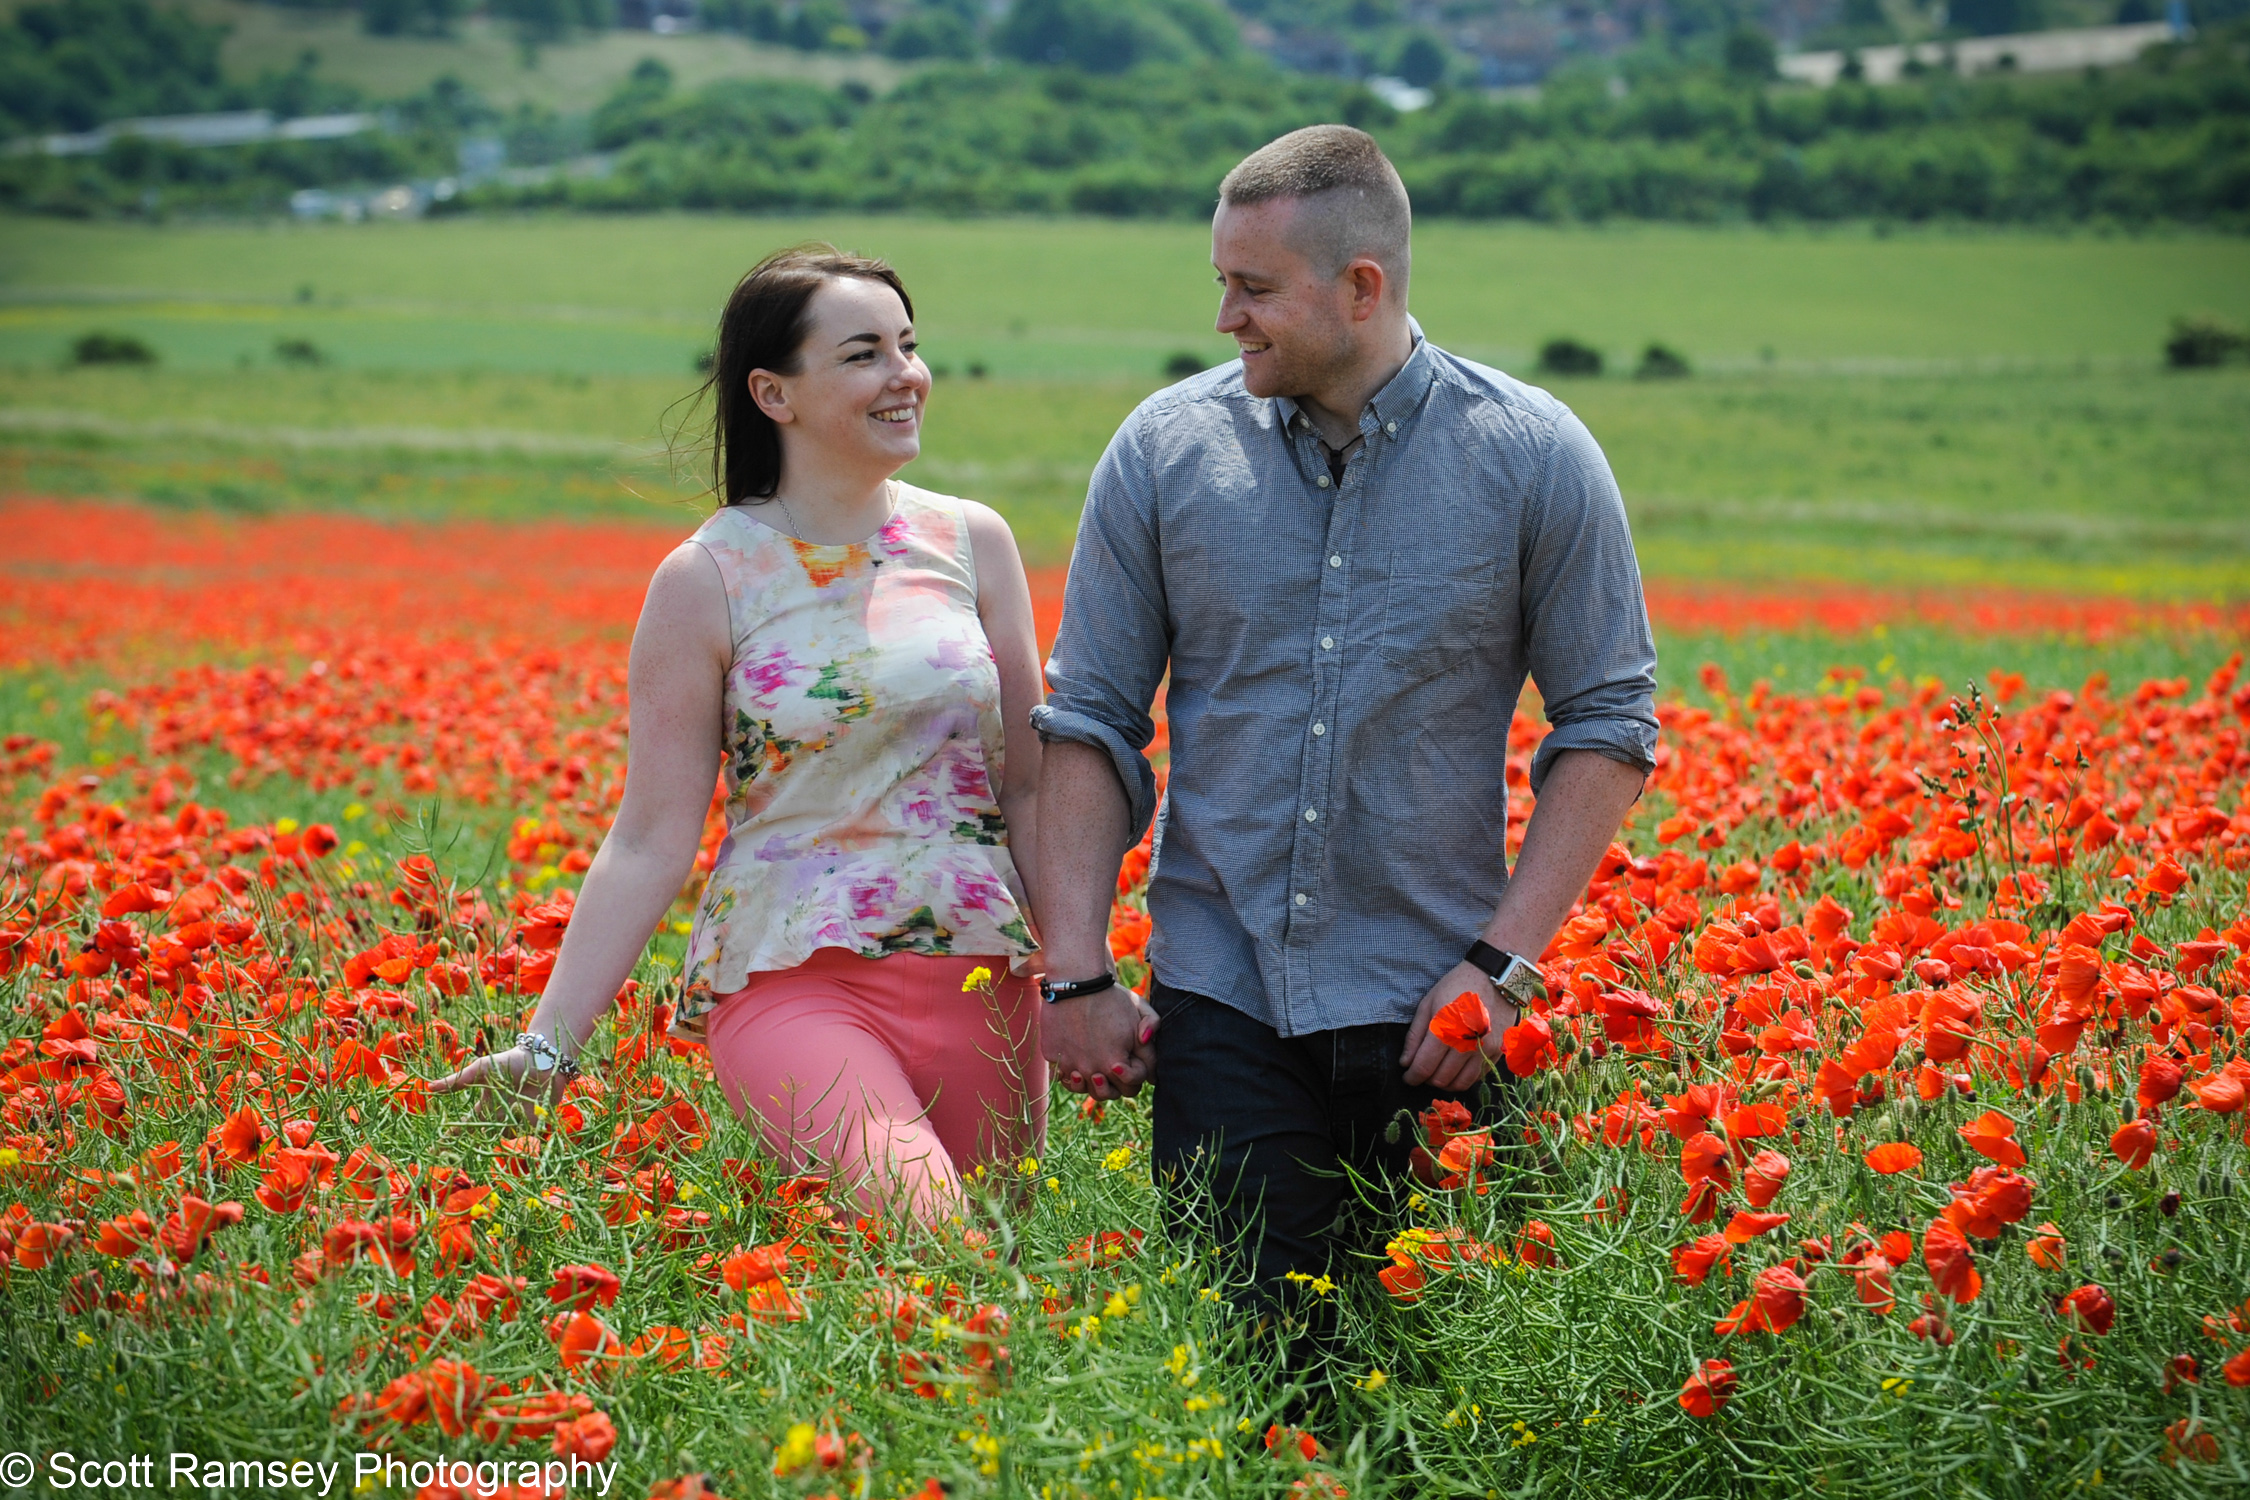 Matt and Chloe walking through a poppy field hand in hand during their engagement photography shoot. The photographs were taken in a poppy field on the South Downs North of Brighton in East Sussex.